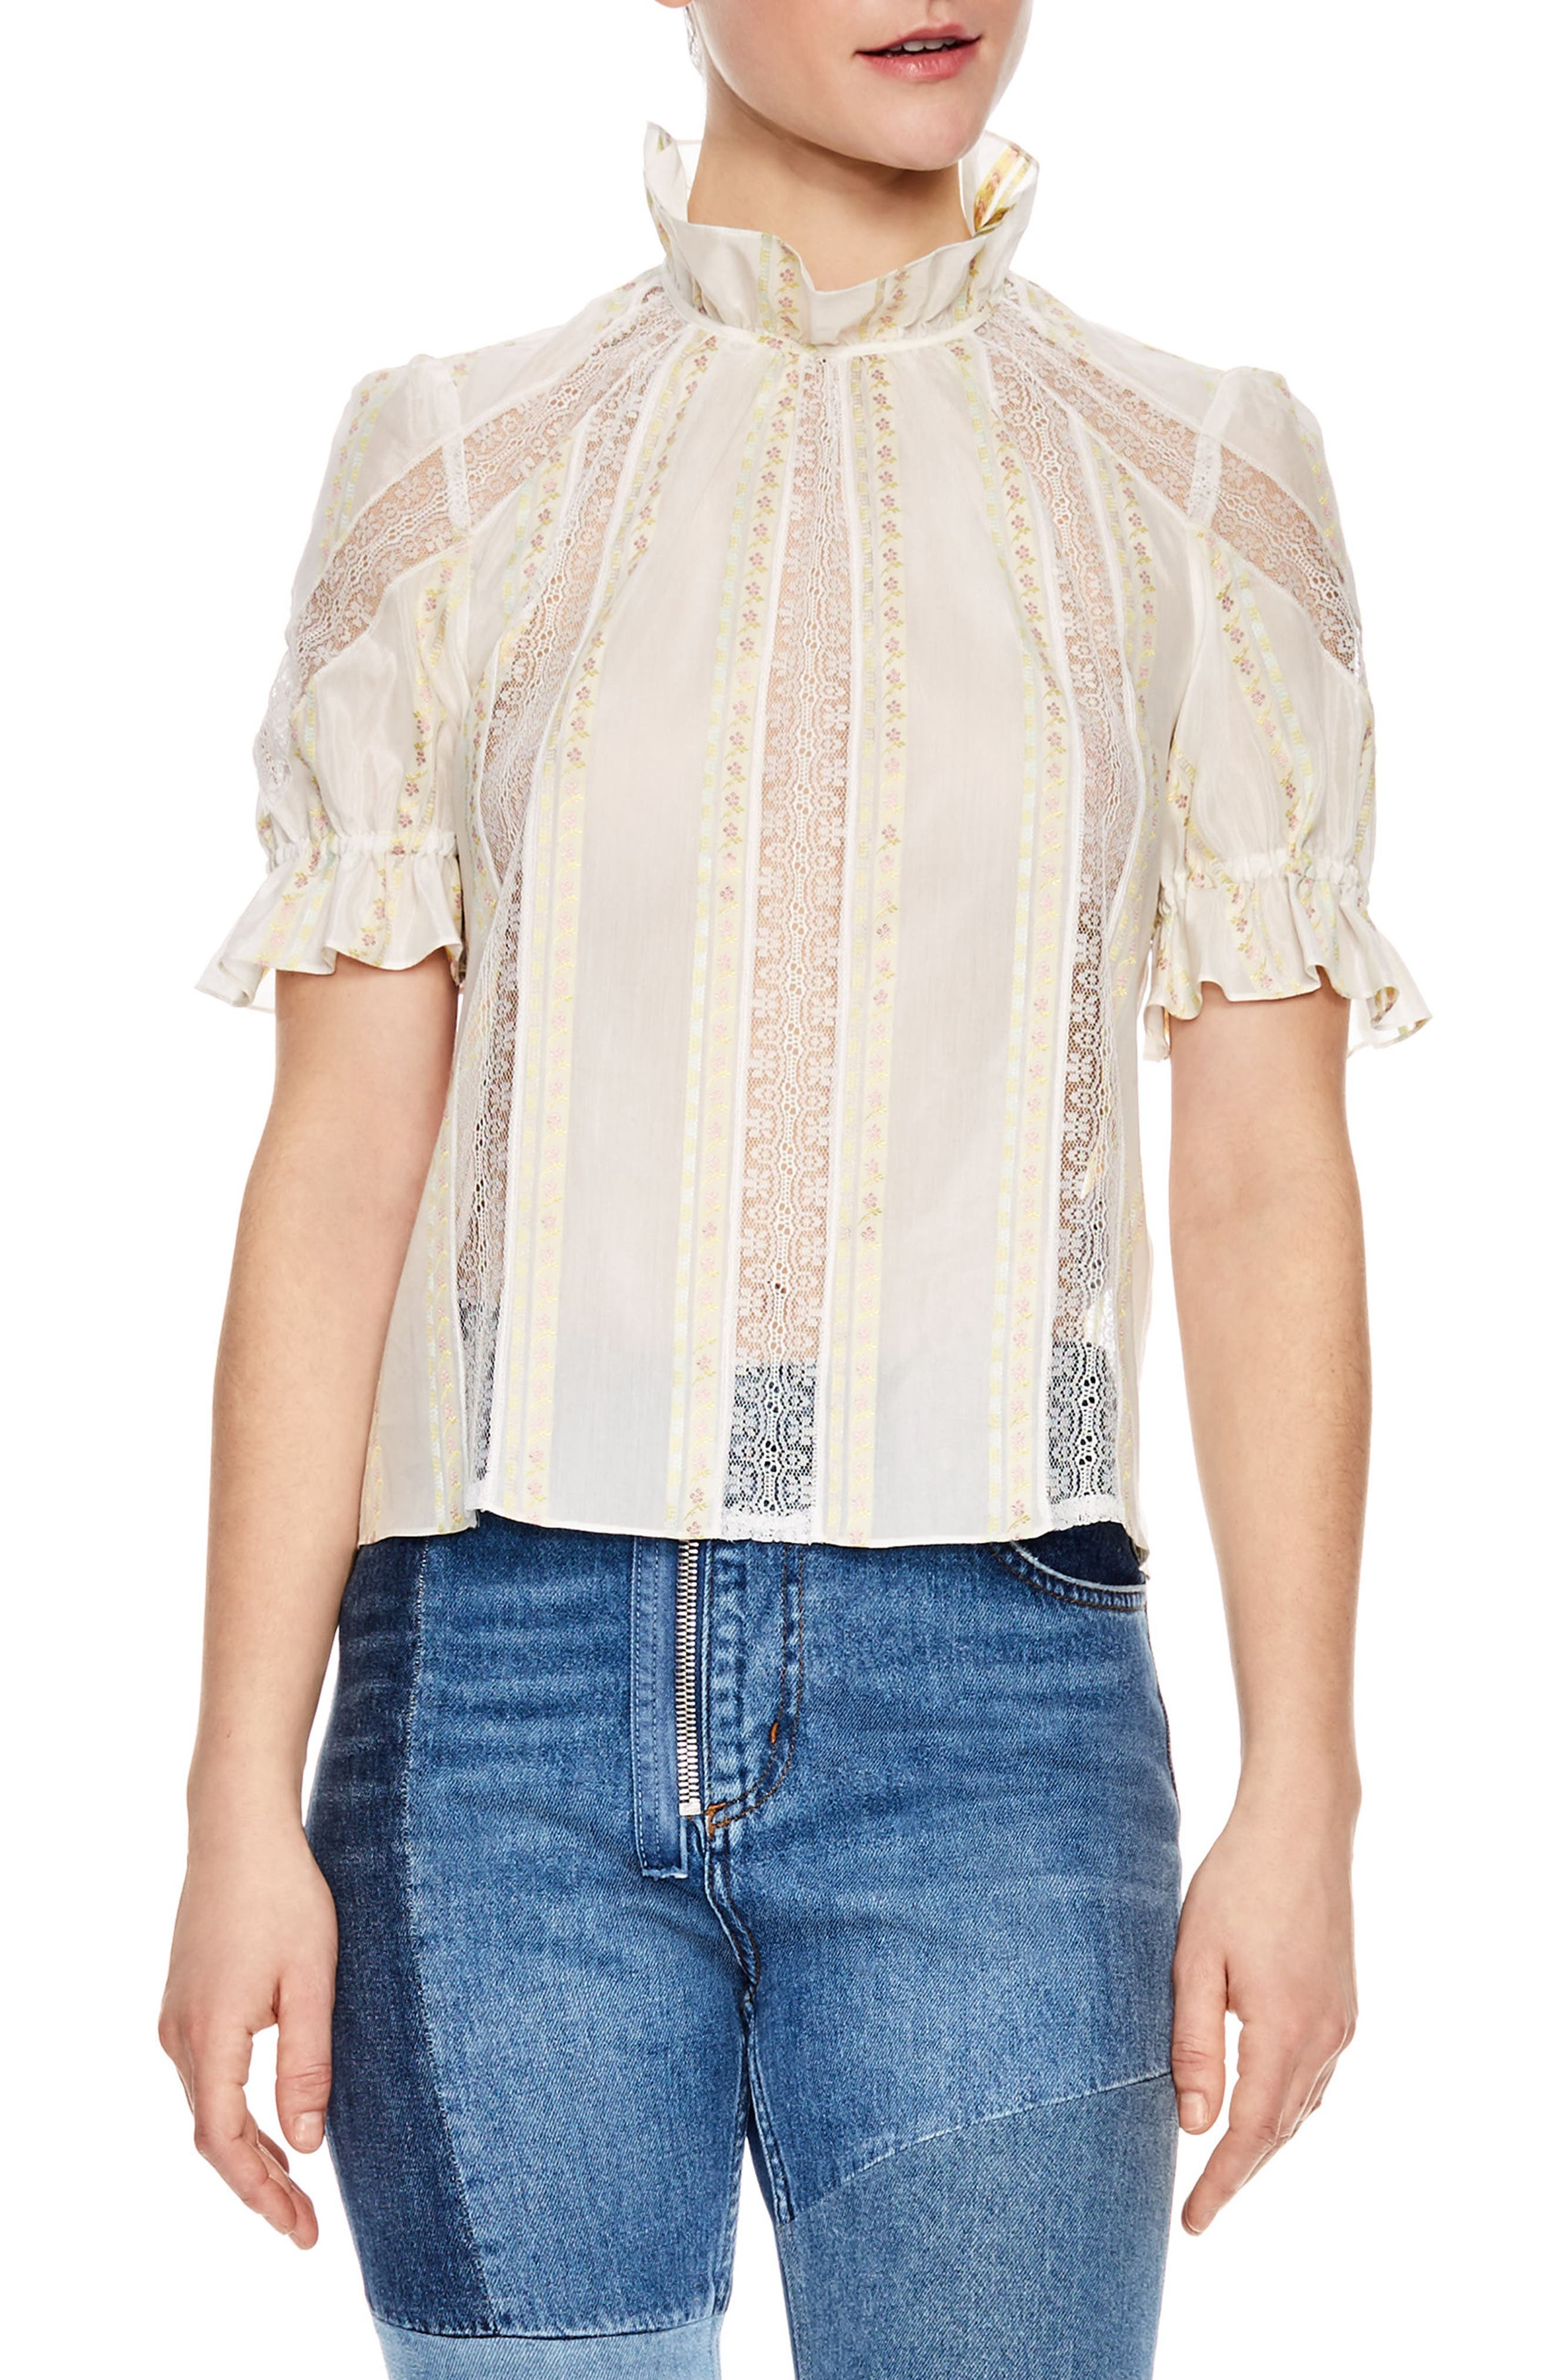 Ecru Lace Inset Blouse,                             Main thumbnail 1, color,                             900